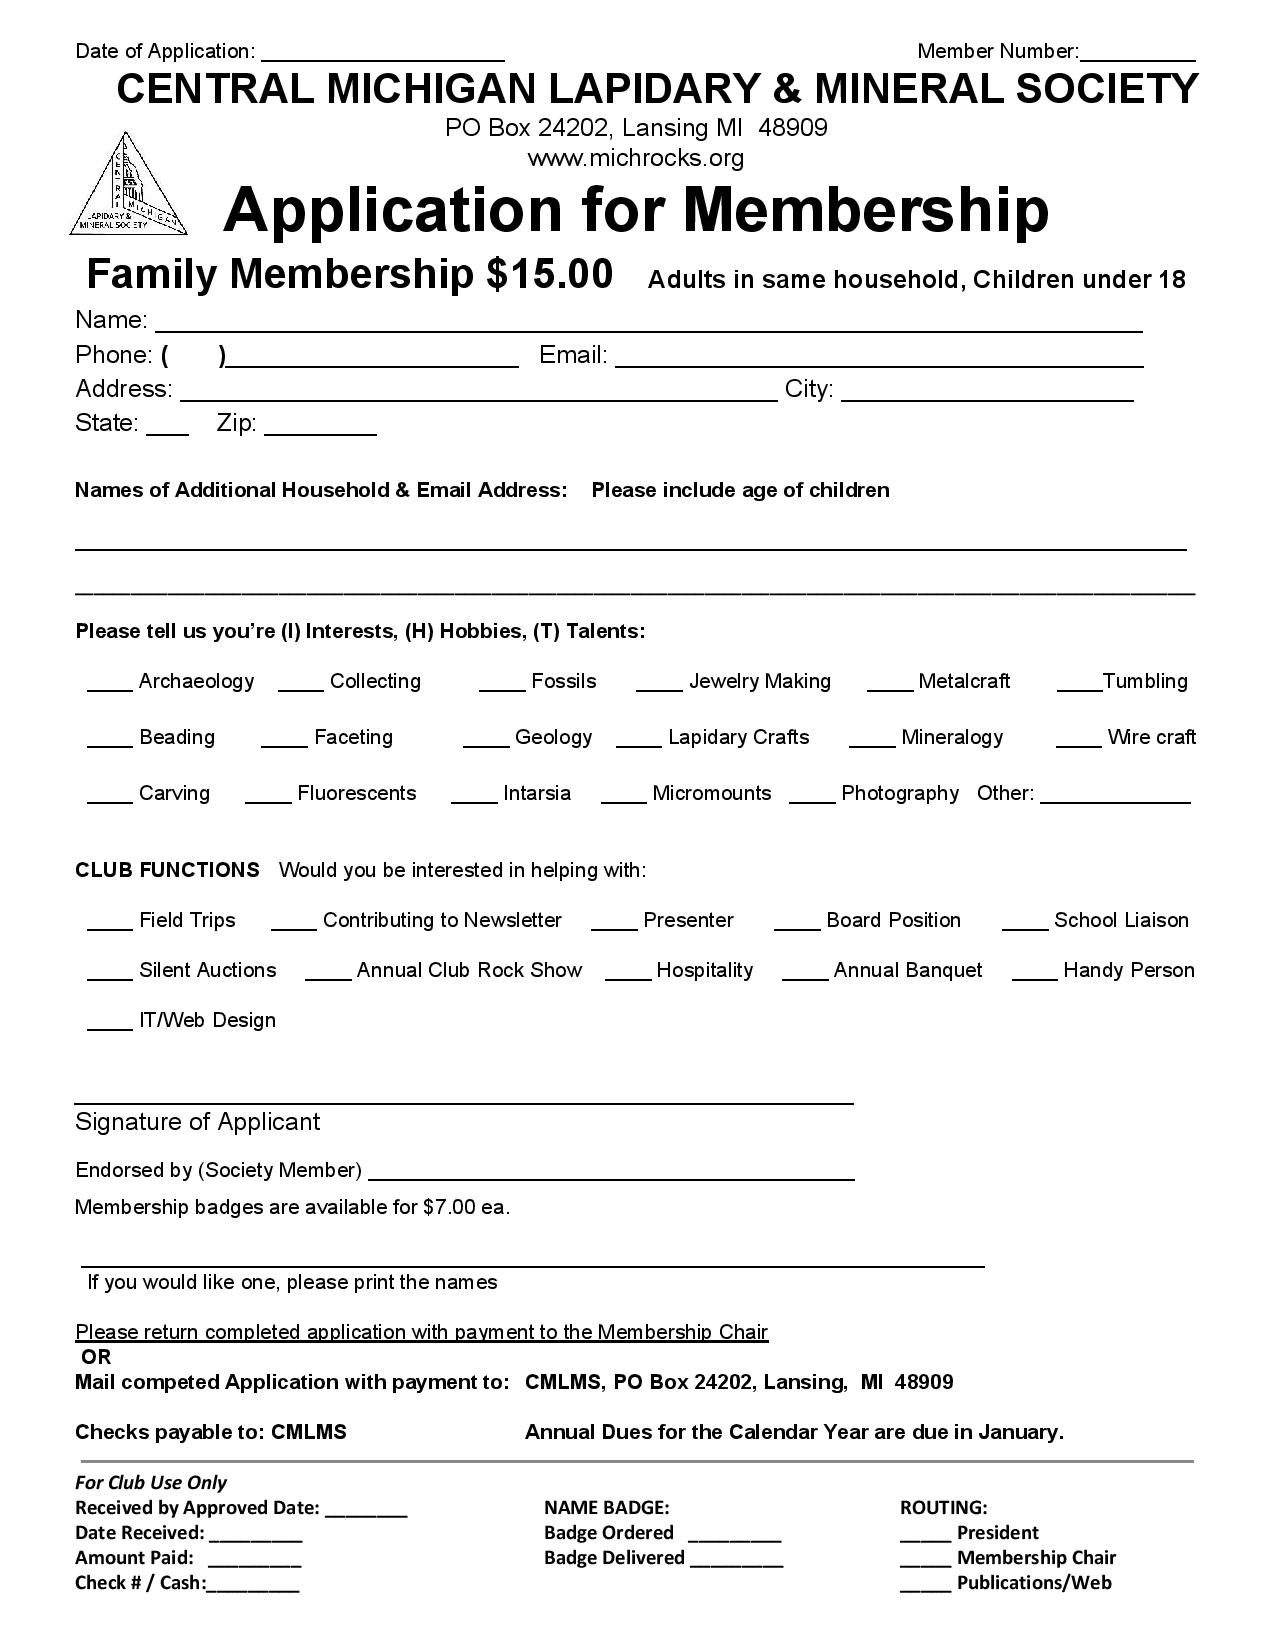 Membership Application - Family